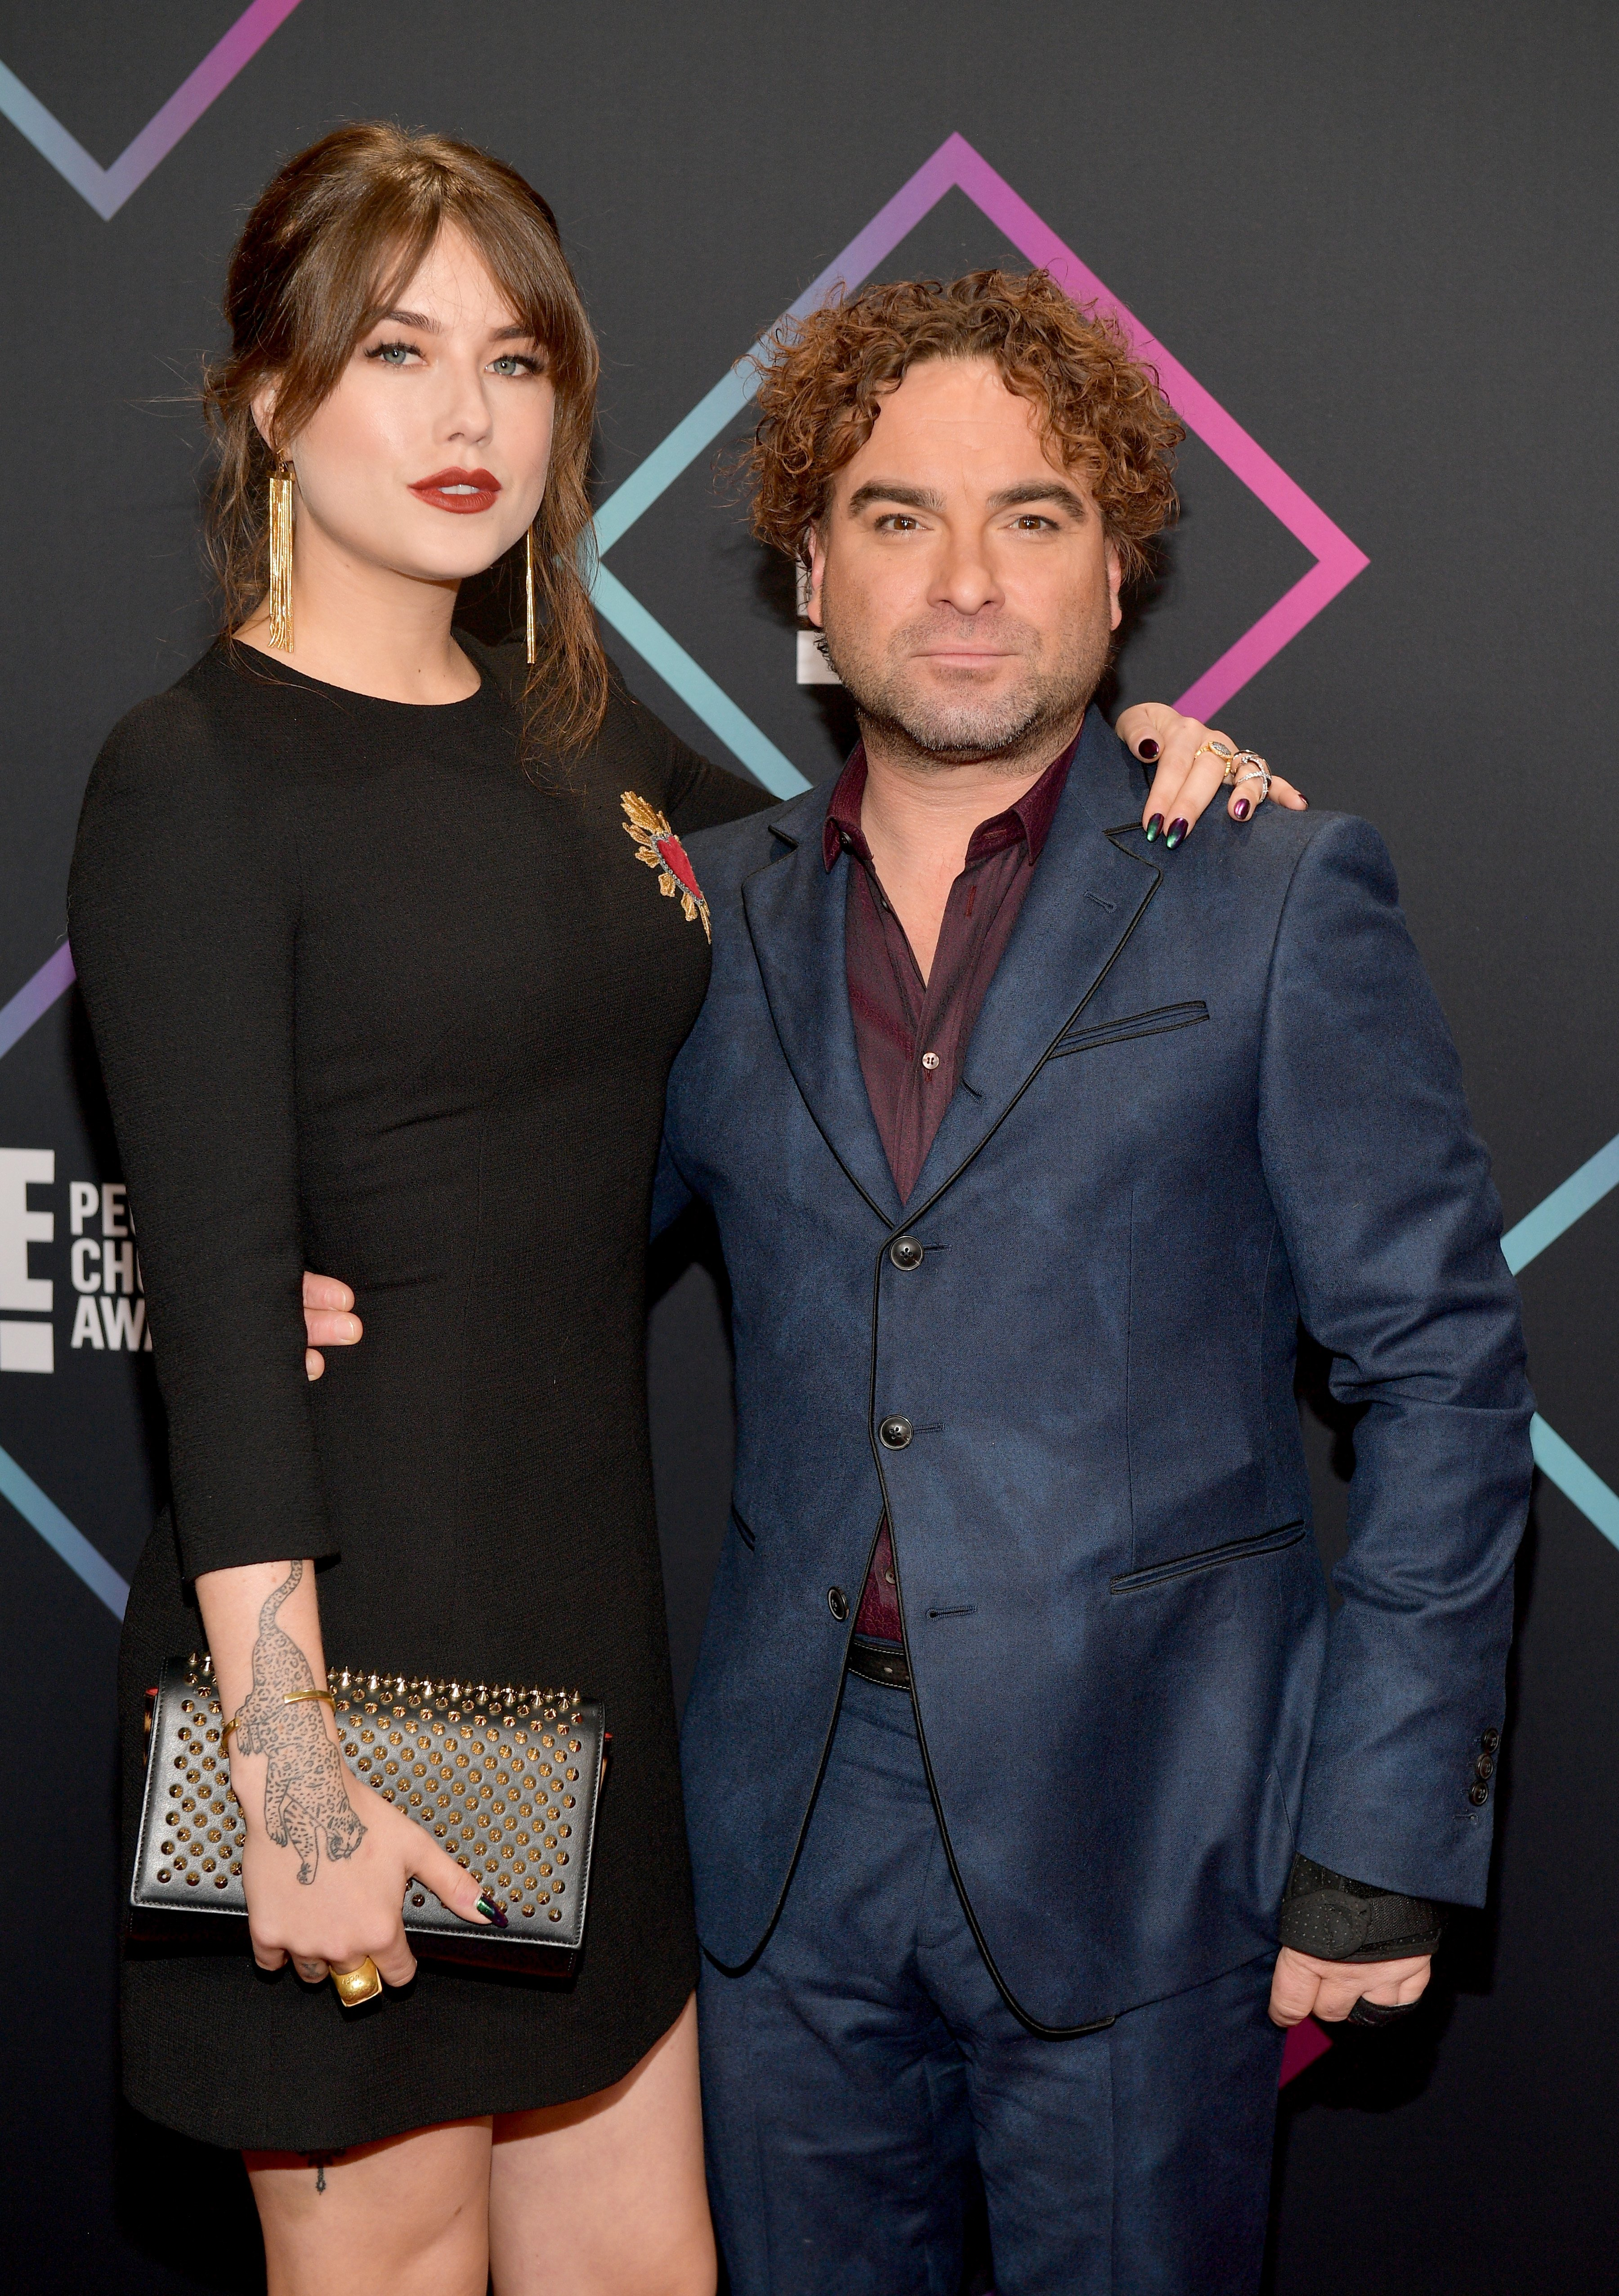 Johnny Galecki  and Alaina Meyer attend the People's Choice Awards 2018 on November 11, 2018, in Santa Monica, California. | Source: Getty Images.